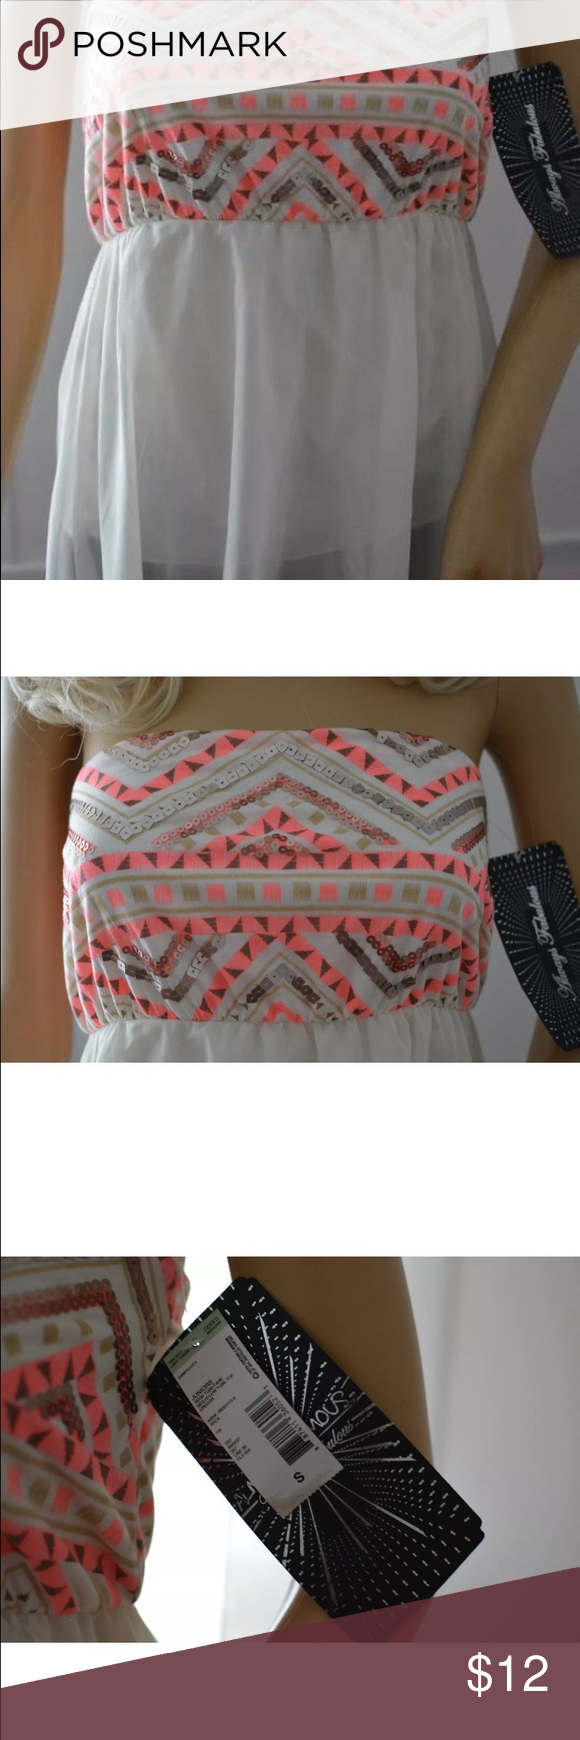 NWT Almost Famous sequined summer tube top! Brand new with tags. Size small. Almost Famous Tops